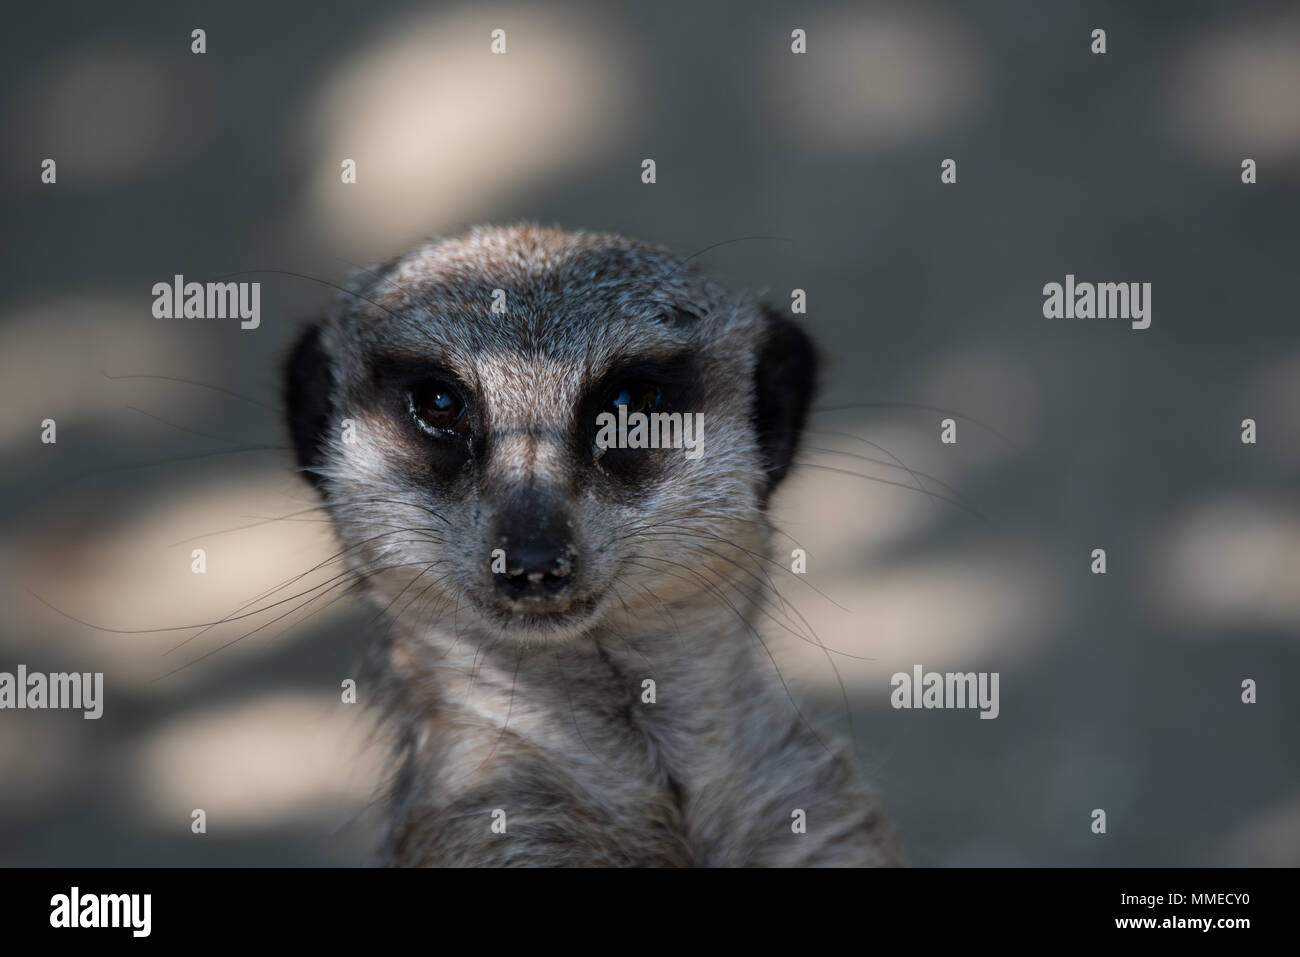 Cute Meerkat - Stock Image